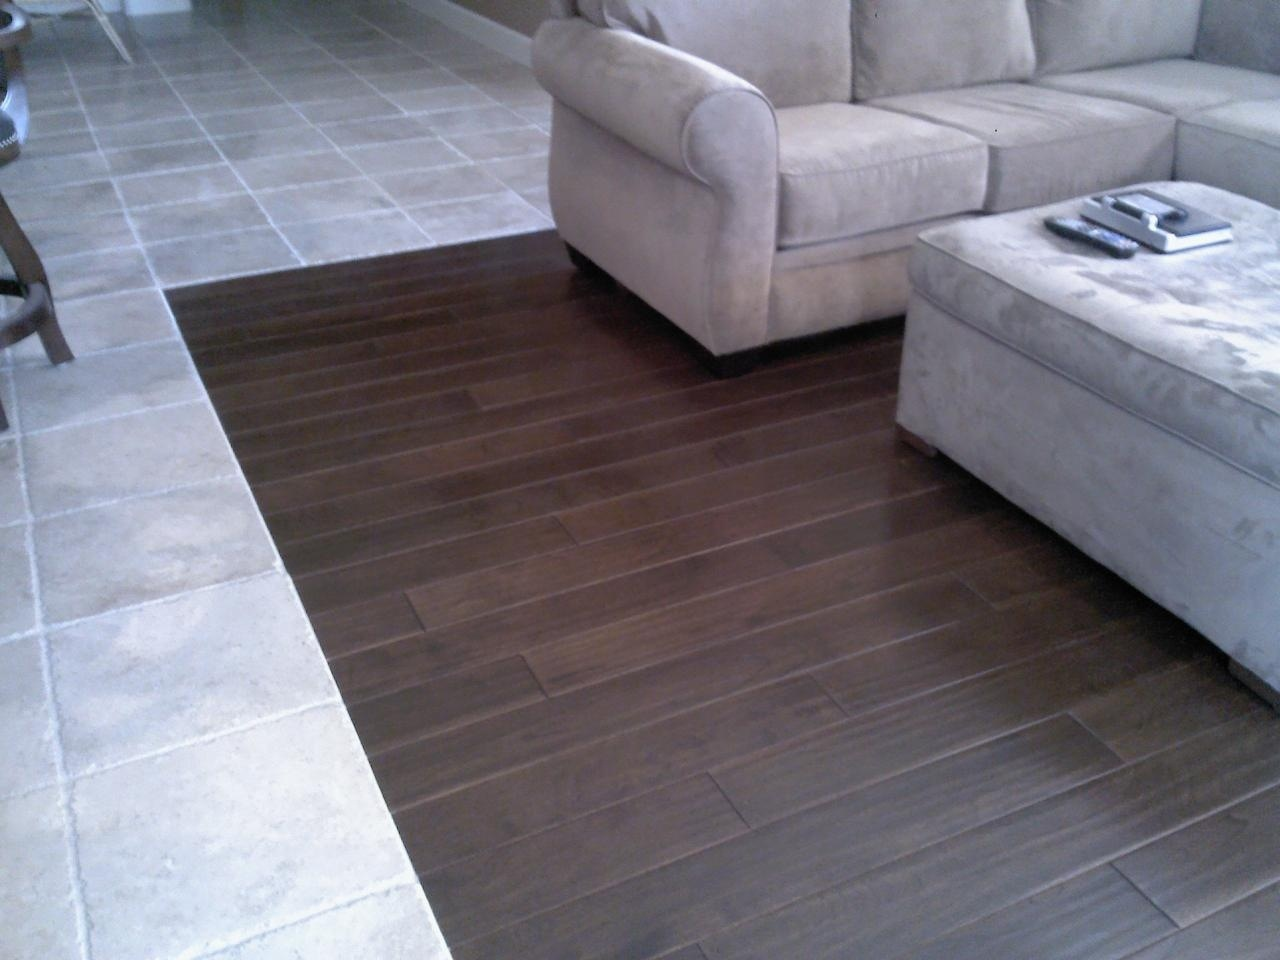 Tile to wood floor transition ideas homesfeed Tile wood floors